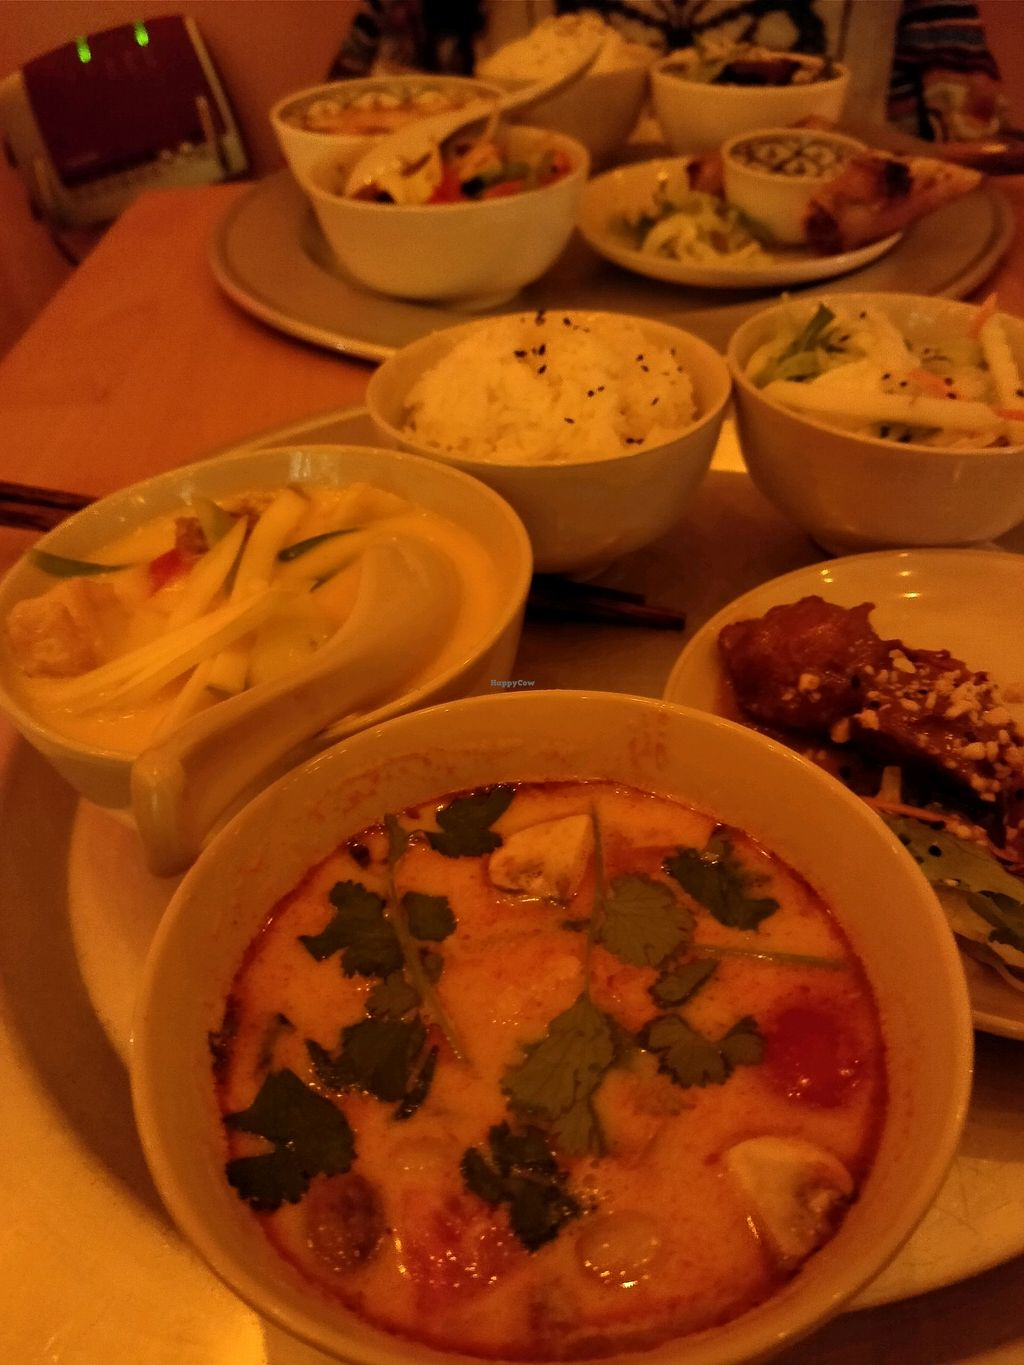 """Photo of +84 Asian Restaurant  by <a href=""""/members/profile/Chrisarnold"""">Chrisarnold</a> <br/>we loved it!  <br/> January 31, 2018  - <a href='/contact/abuse/image/96619/353150'>Report</a>"""